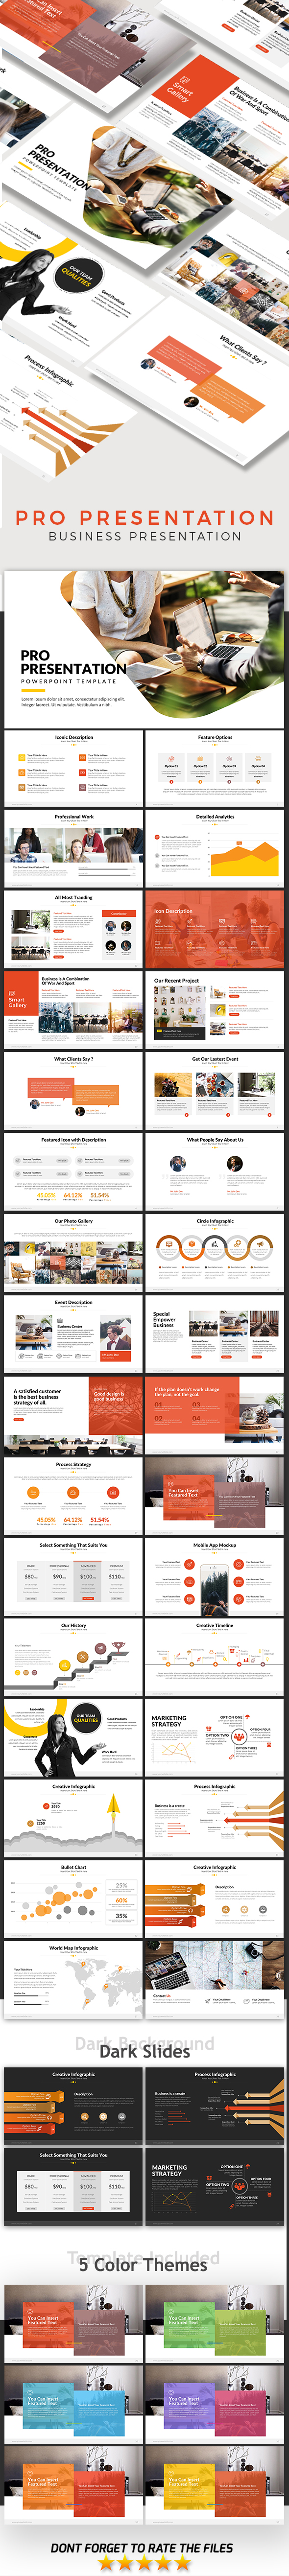 GraphicRiver Pro Presentation Powerpoint Template 20899204